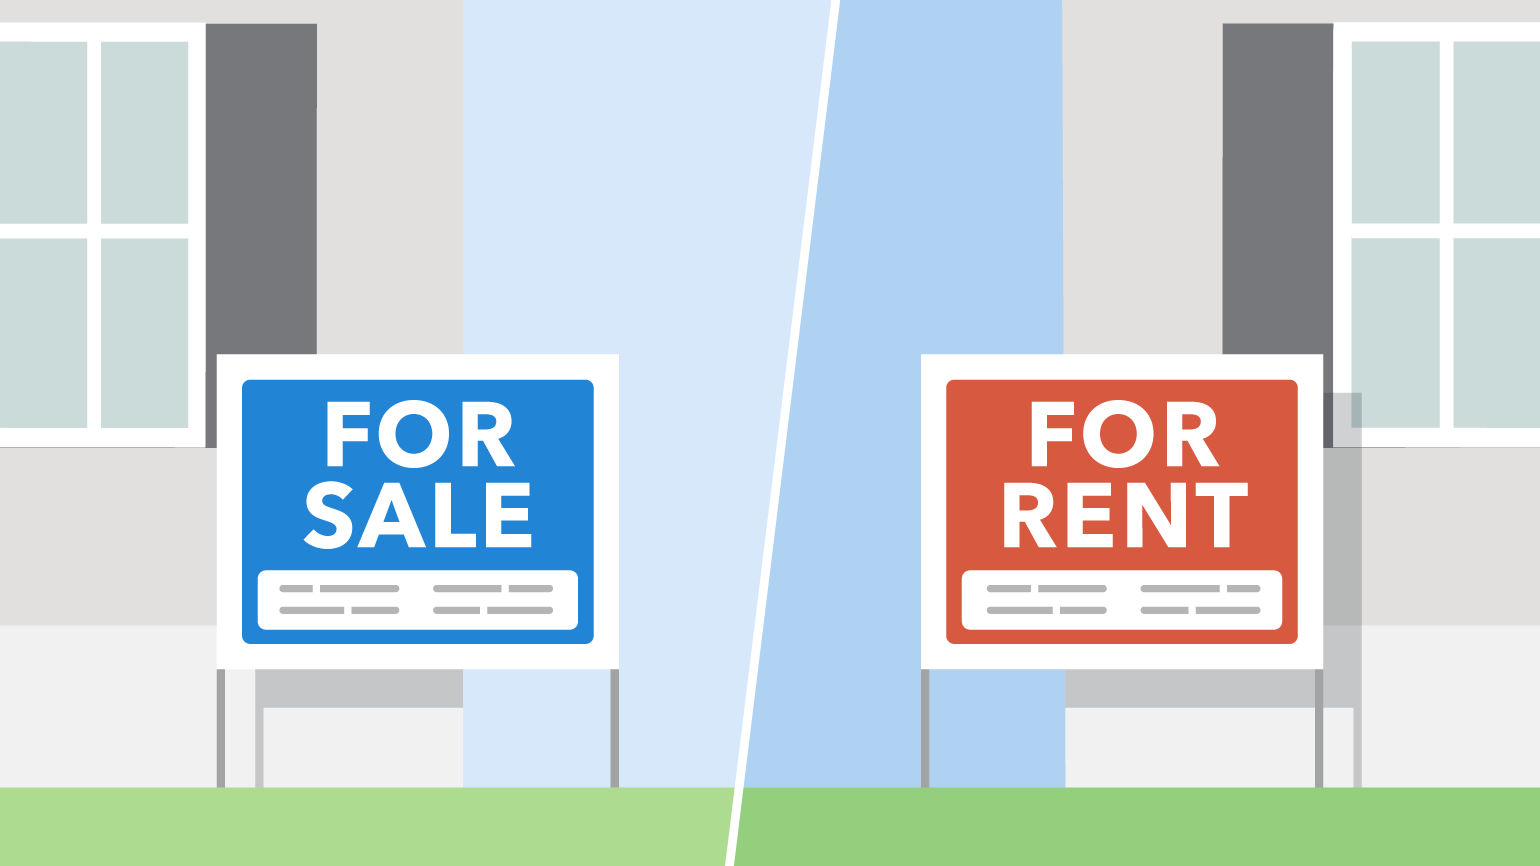 When Does Renting a Home Make More Sense Than Buying One?